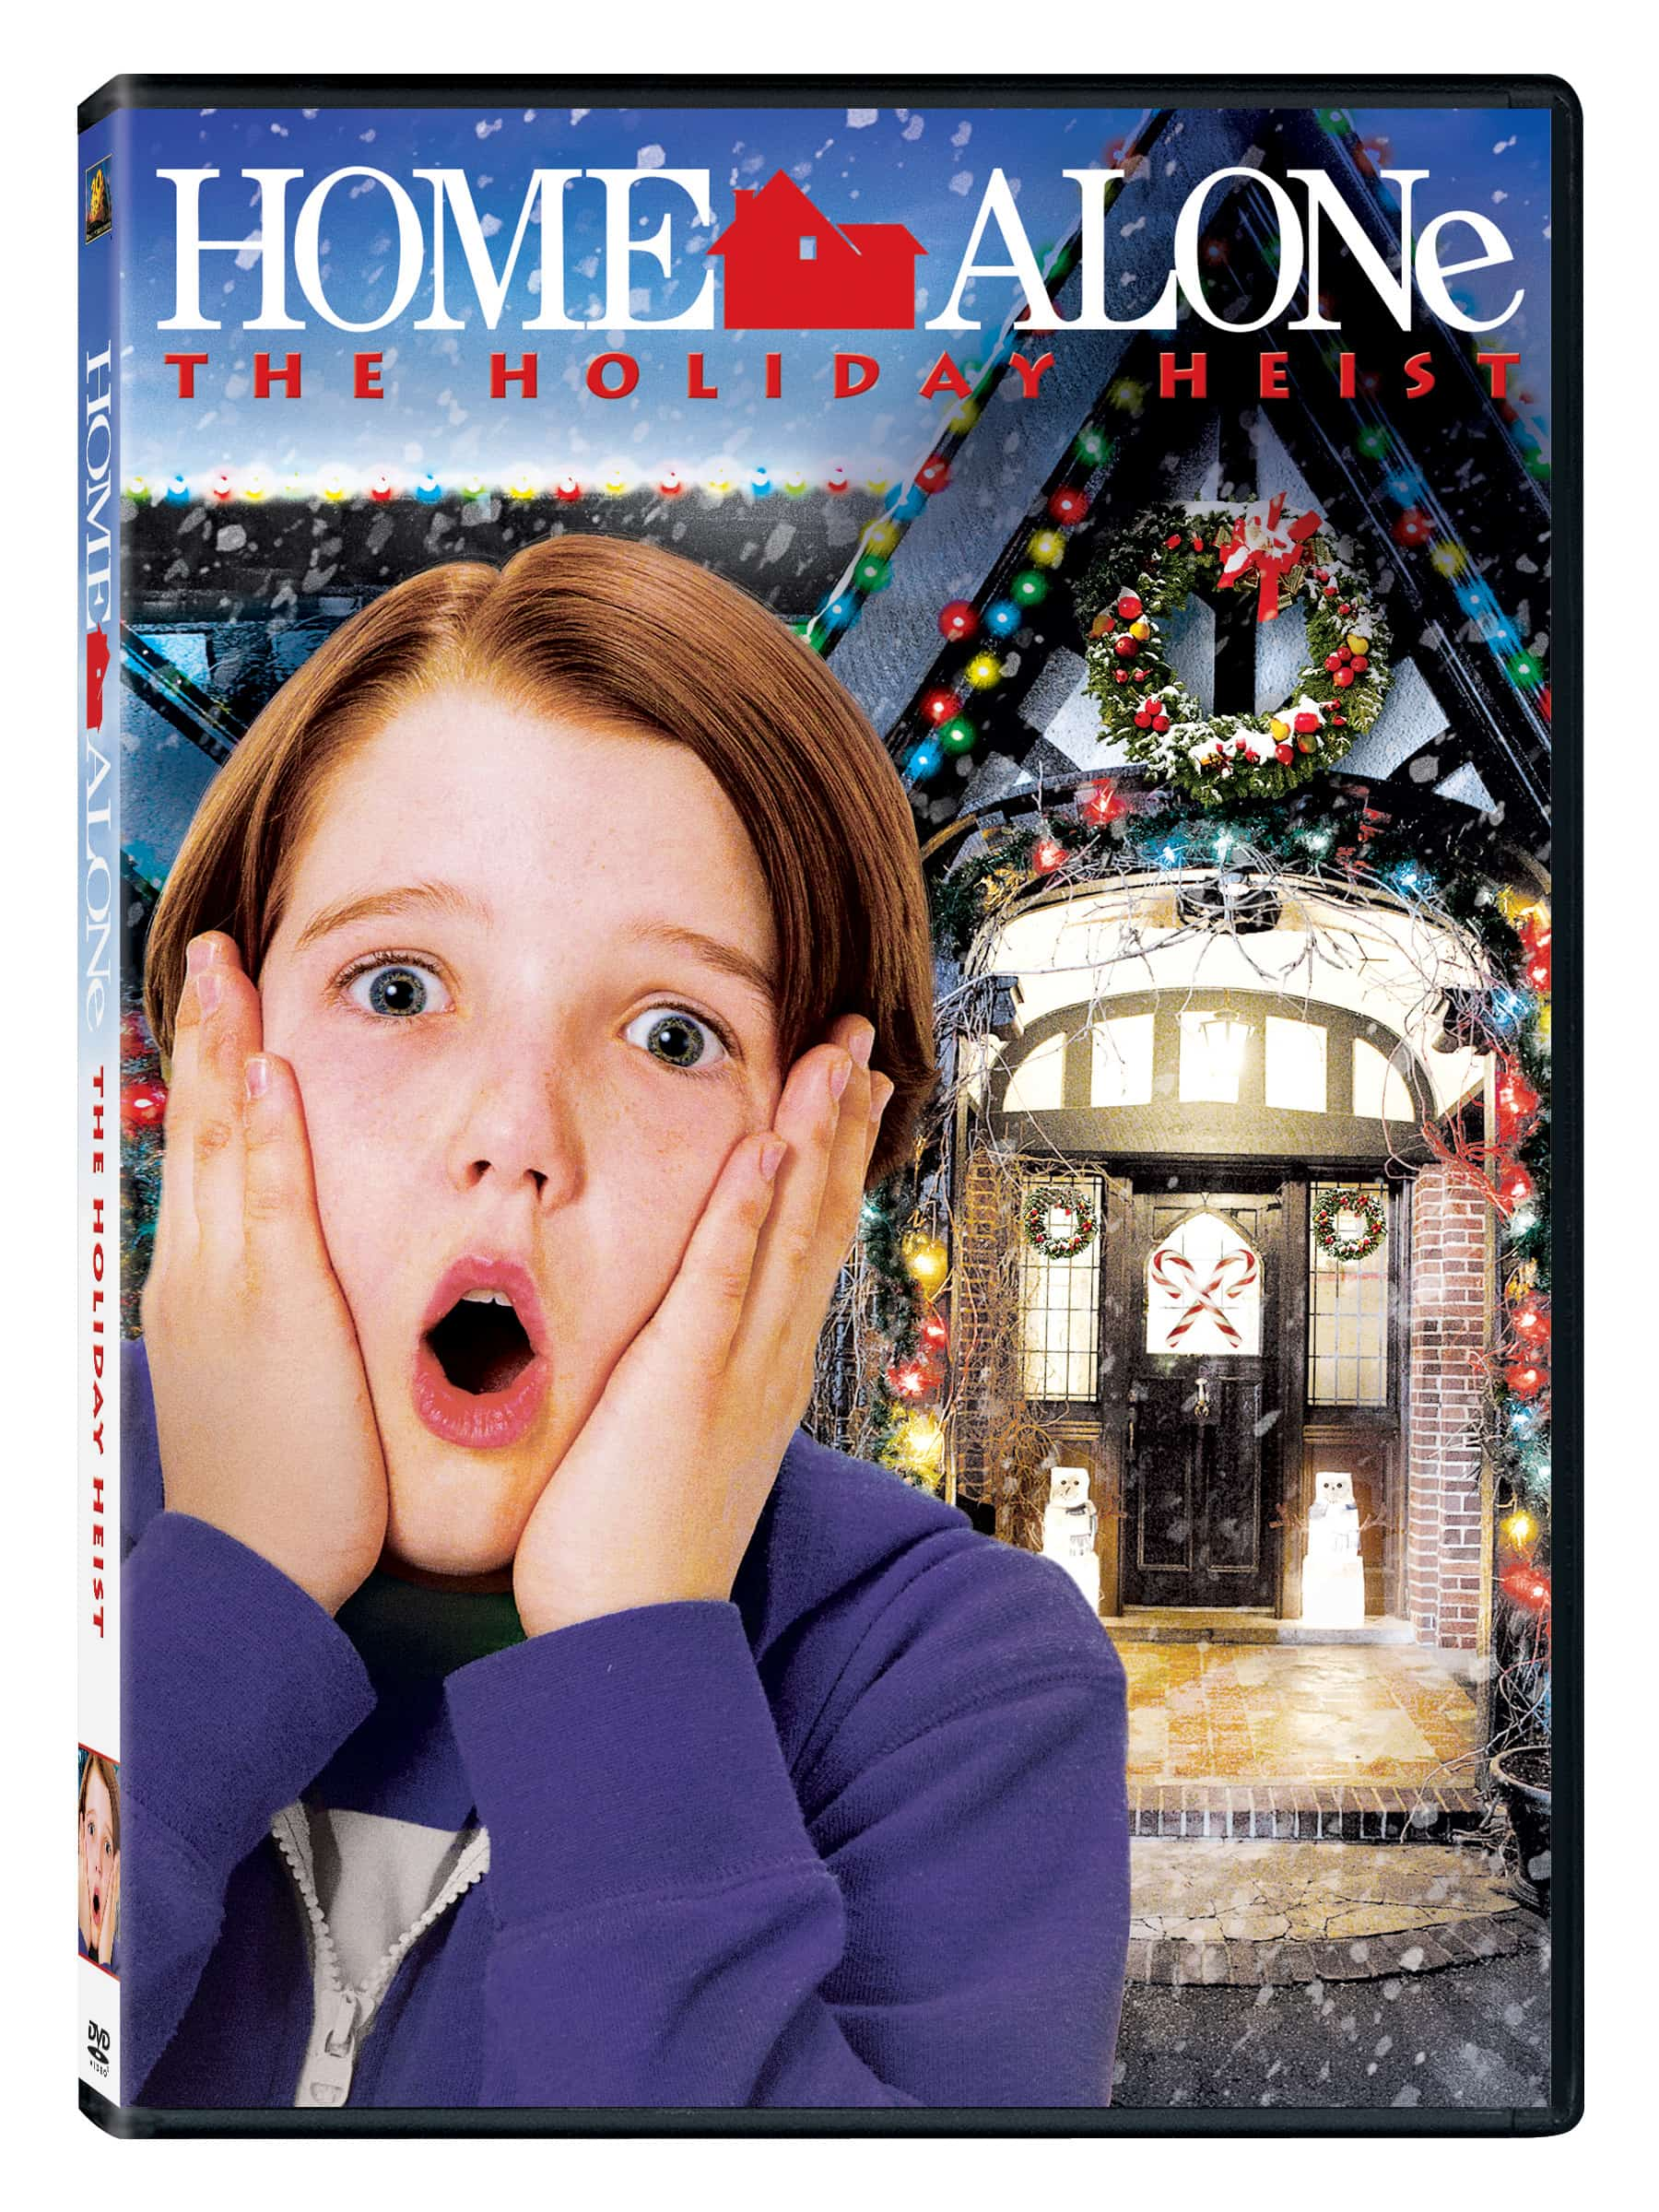 Home Alone The Holiday Heist DVD